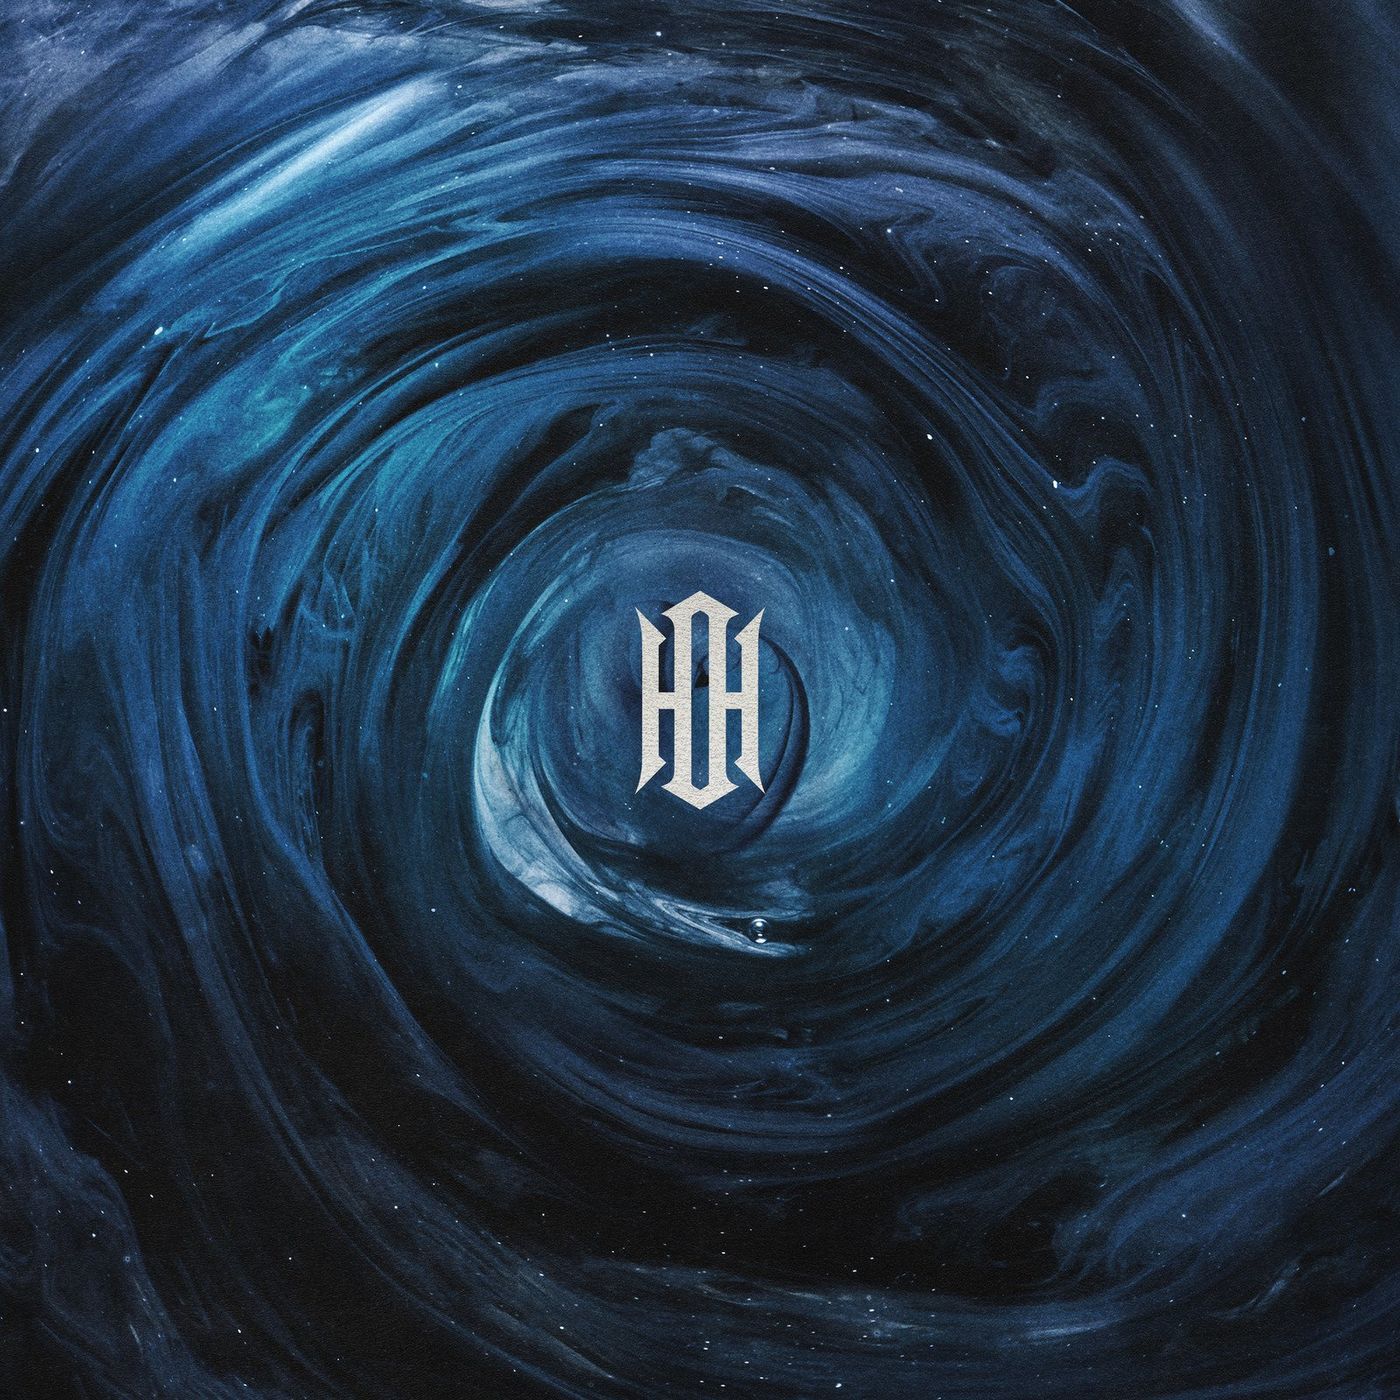 Our Hollow, Our Home - Overcast [single] (2021)